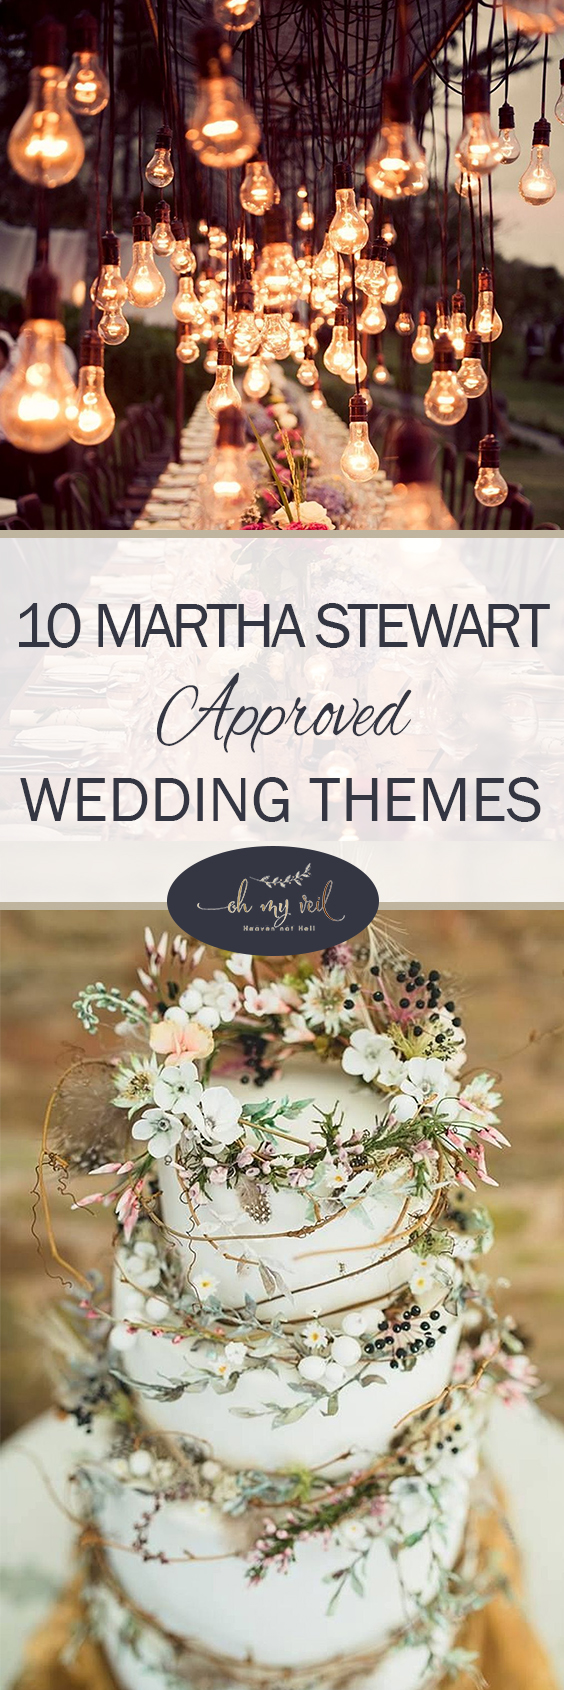 10 Martha Stewart Approved Wedding Themes| Martha Stewart Weddings, Wedding Themes, Wedding Hacks, Martha Stewart Wedding Themes. #WeddingThemes #MarthaStewartWeddings #MarthaStewart